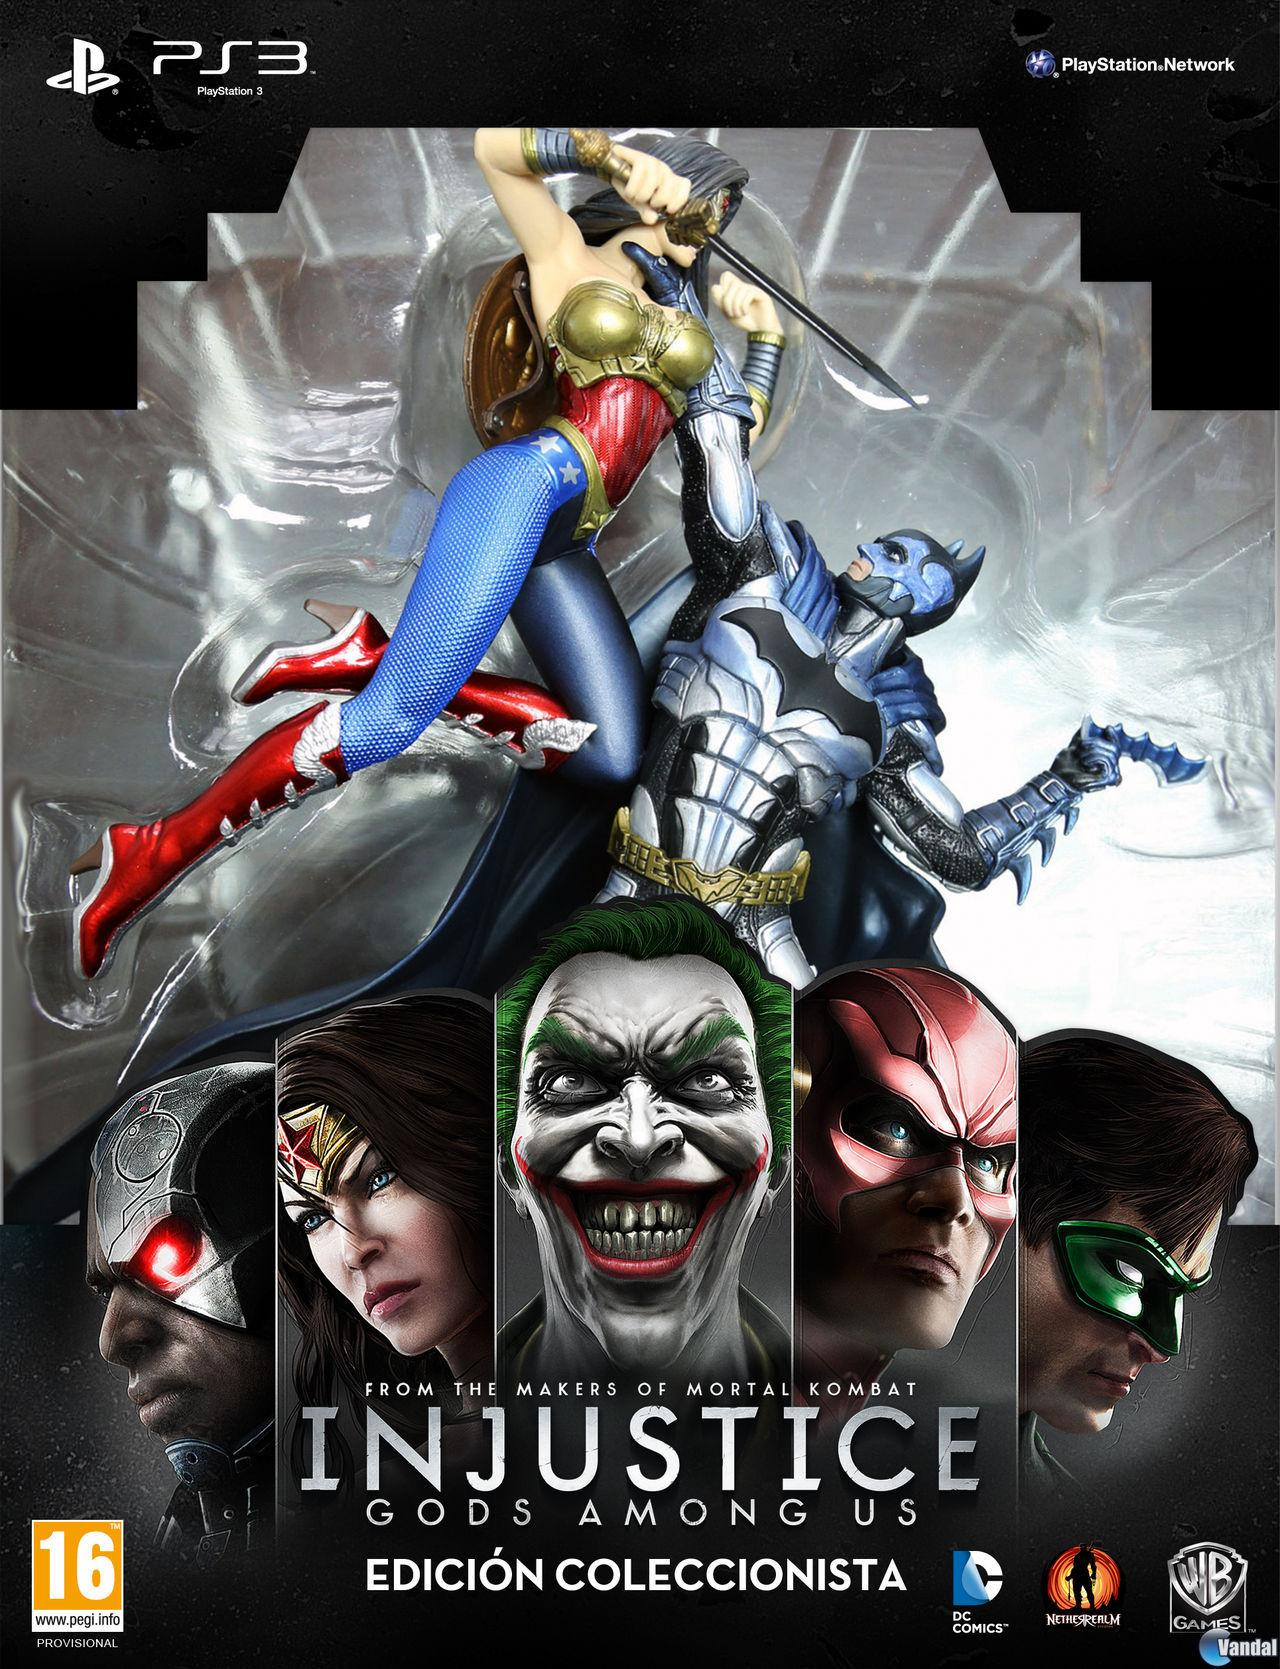 Injustice: Gods Among Us se pondr� a la venta el 19 de abril